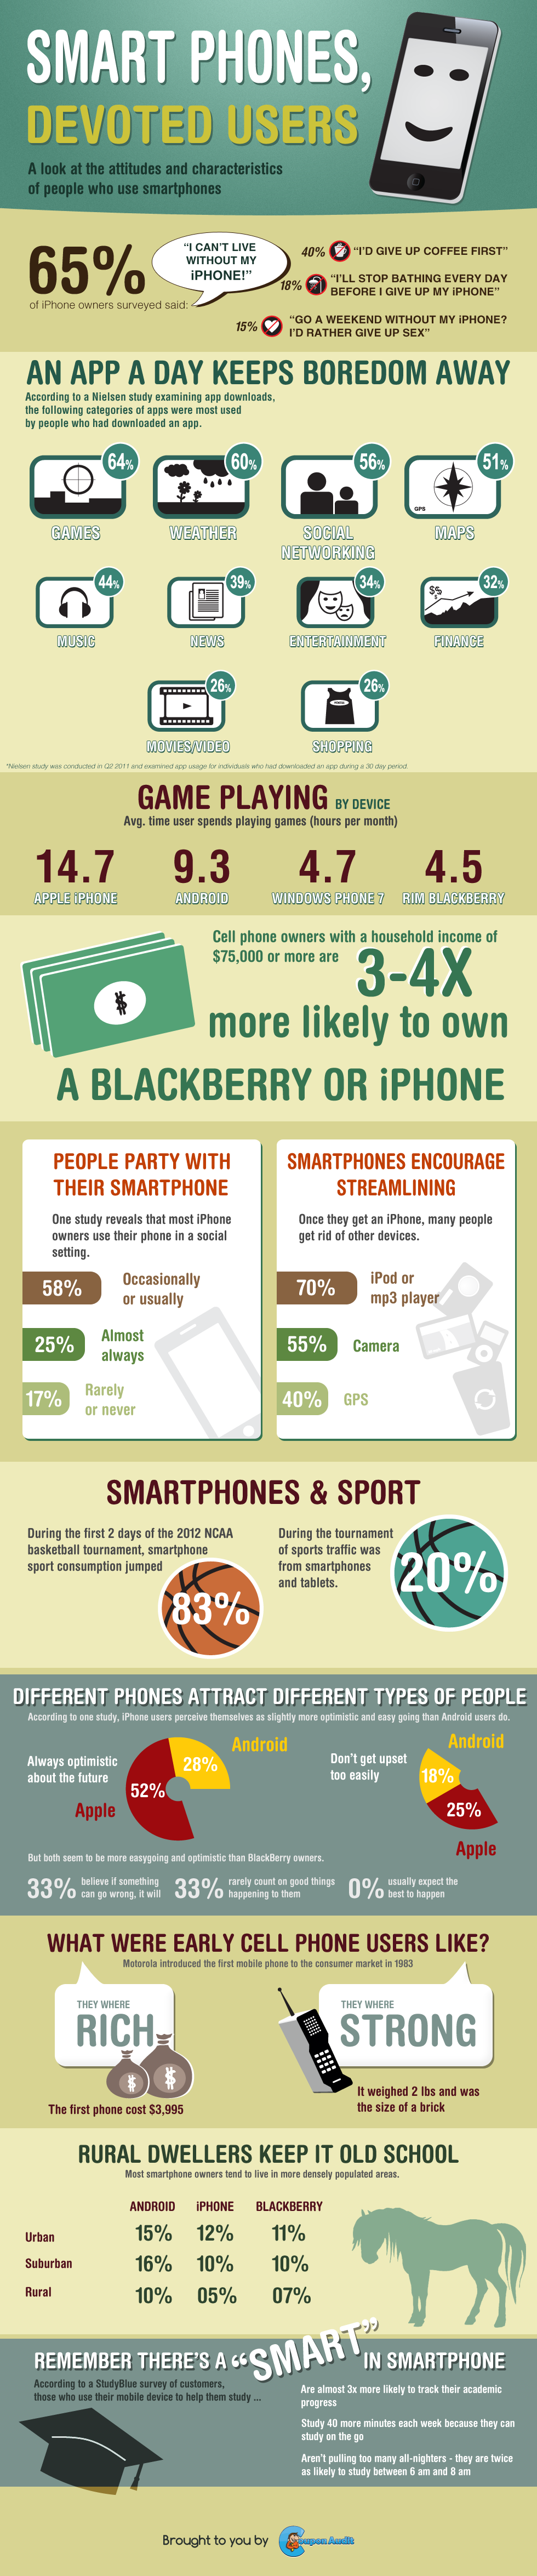 Smart Phones, Devoted Users